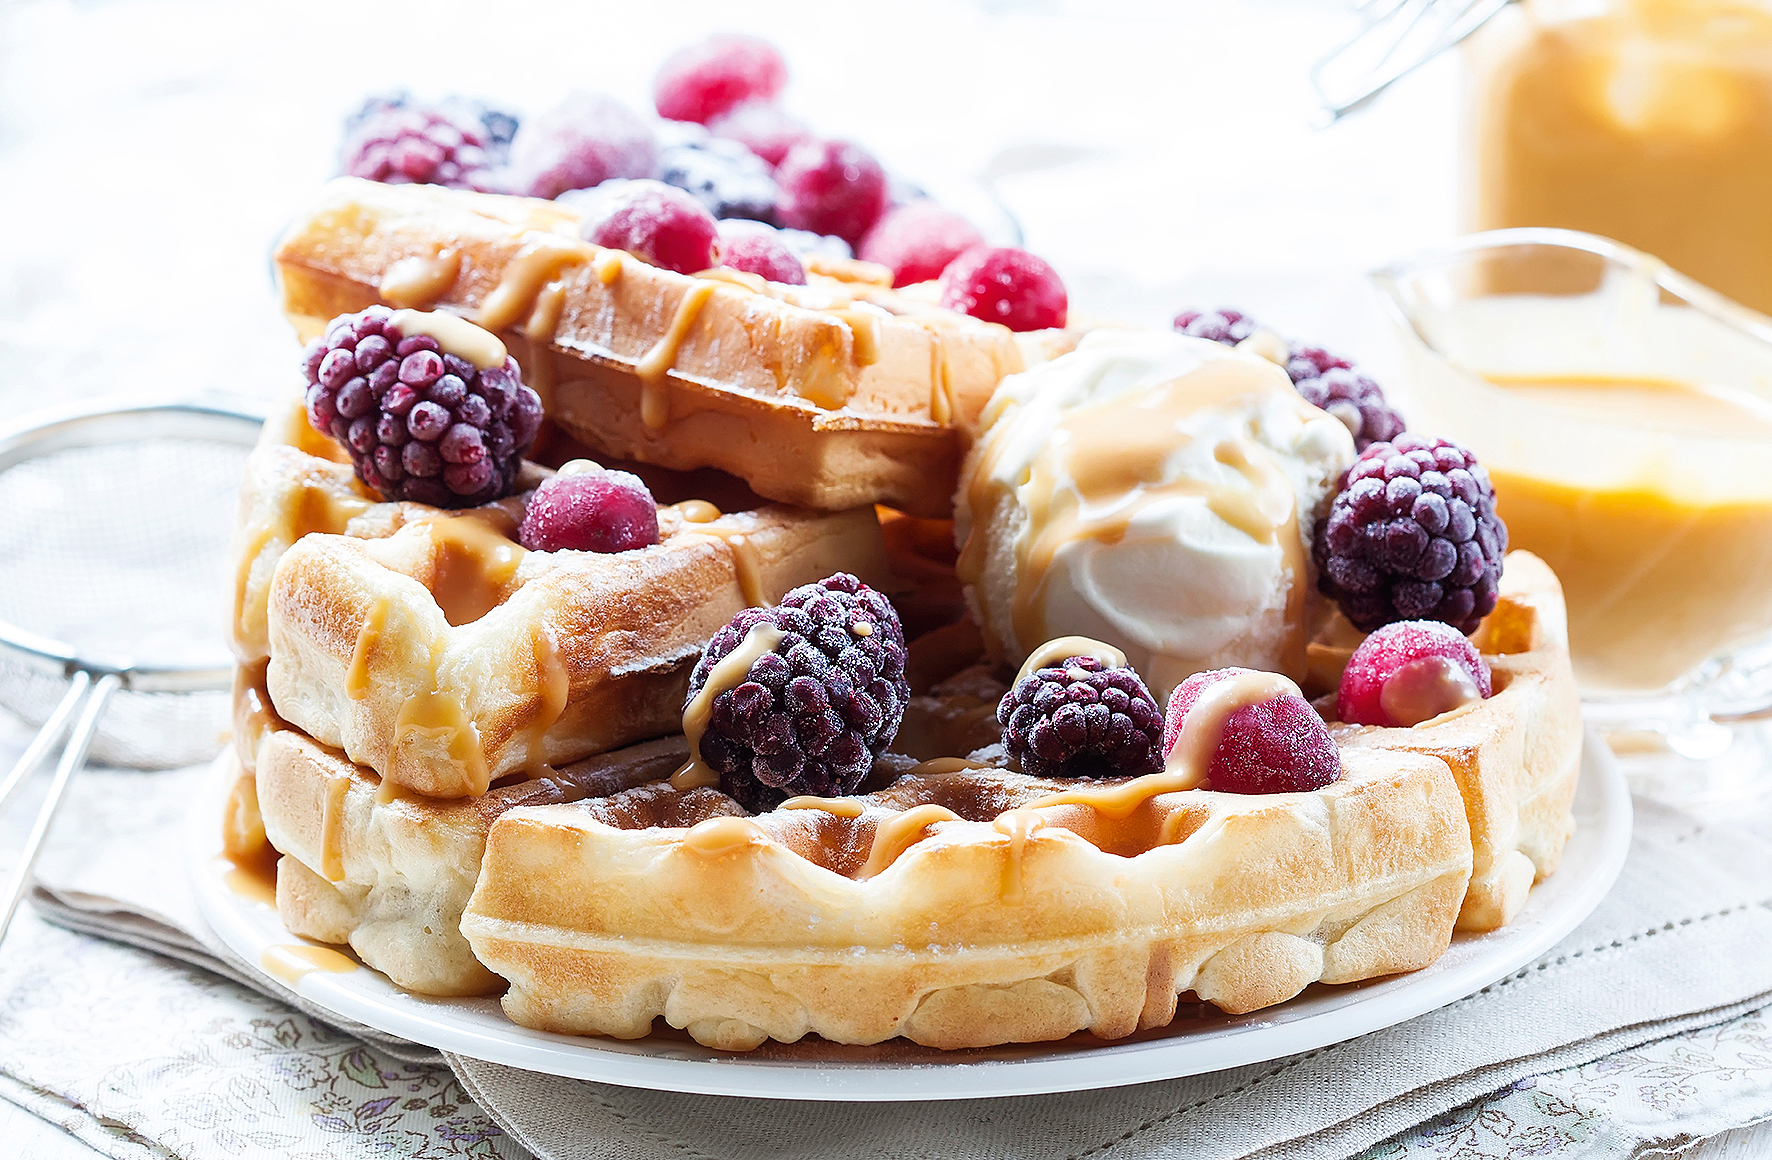 Belgian waffles with caramel and ice cream